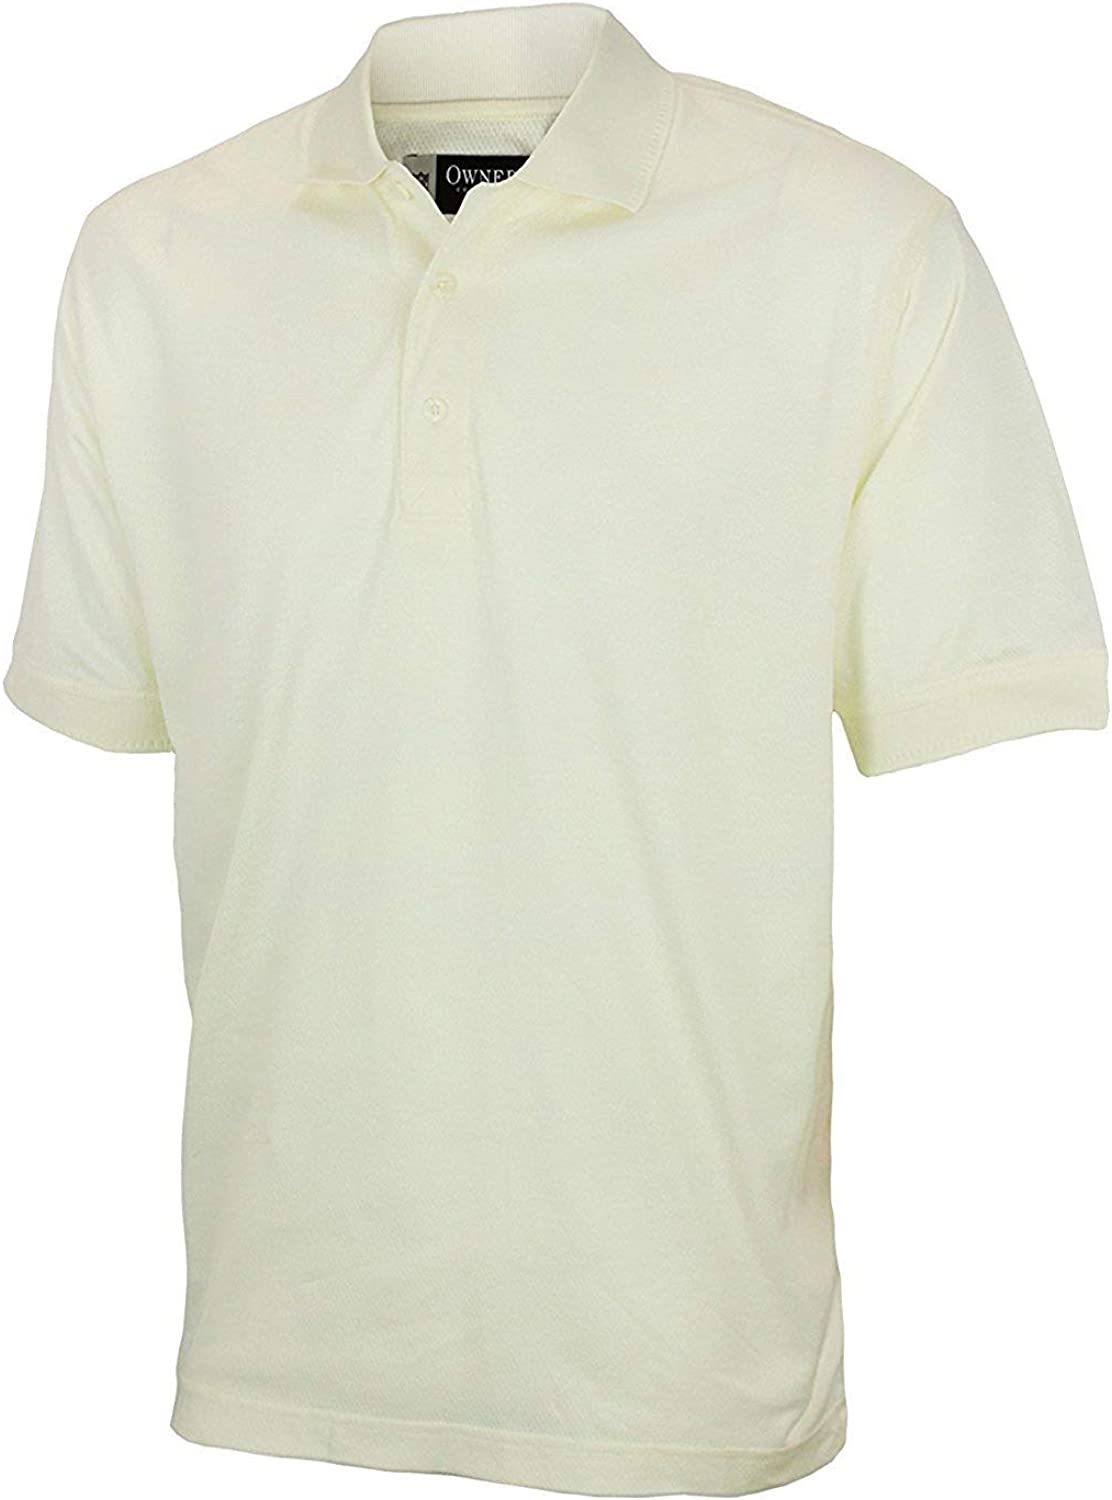 Reebok para Hombre propietarios Collection Polo Camisa, Color ...